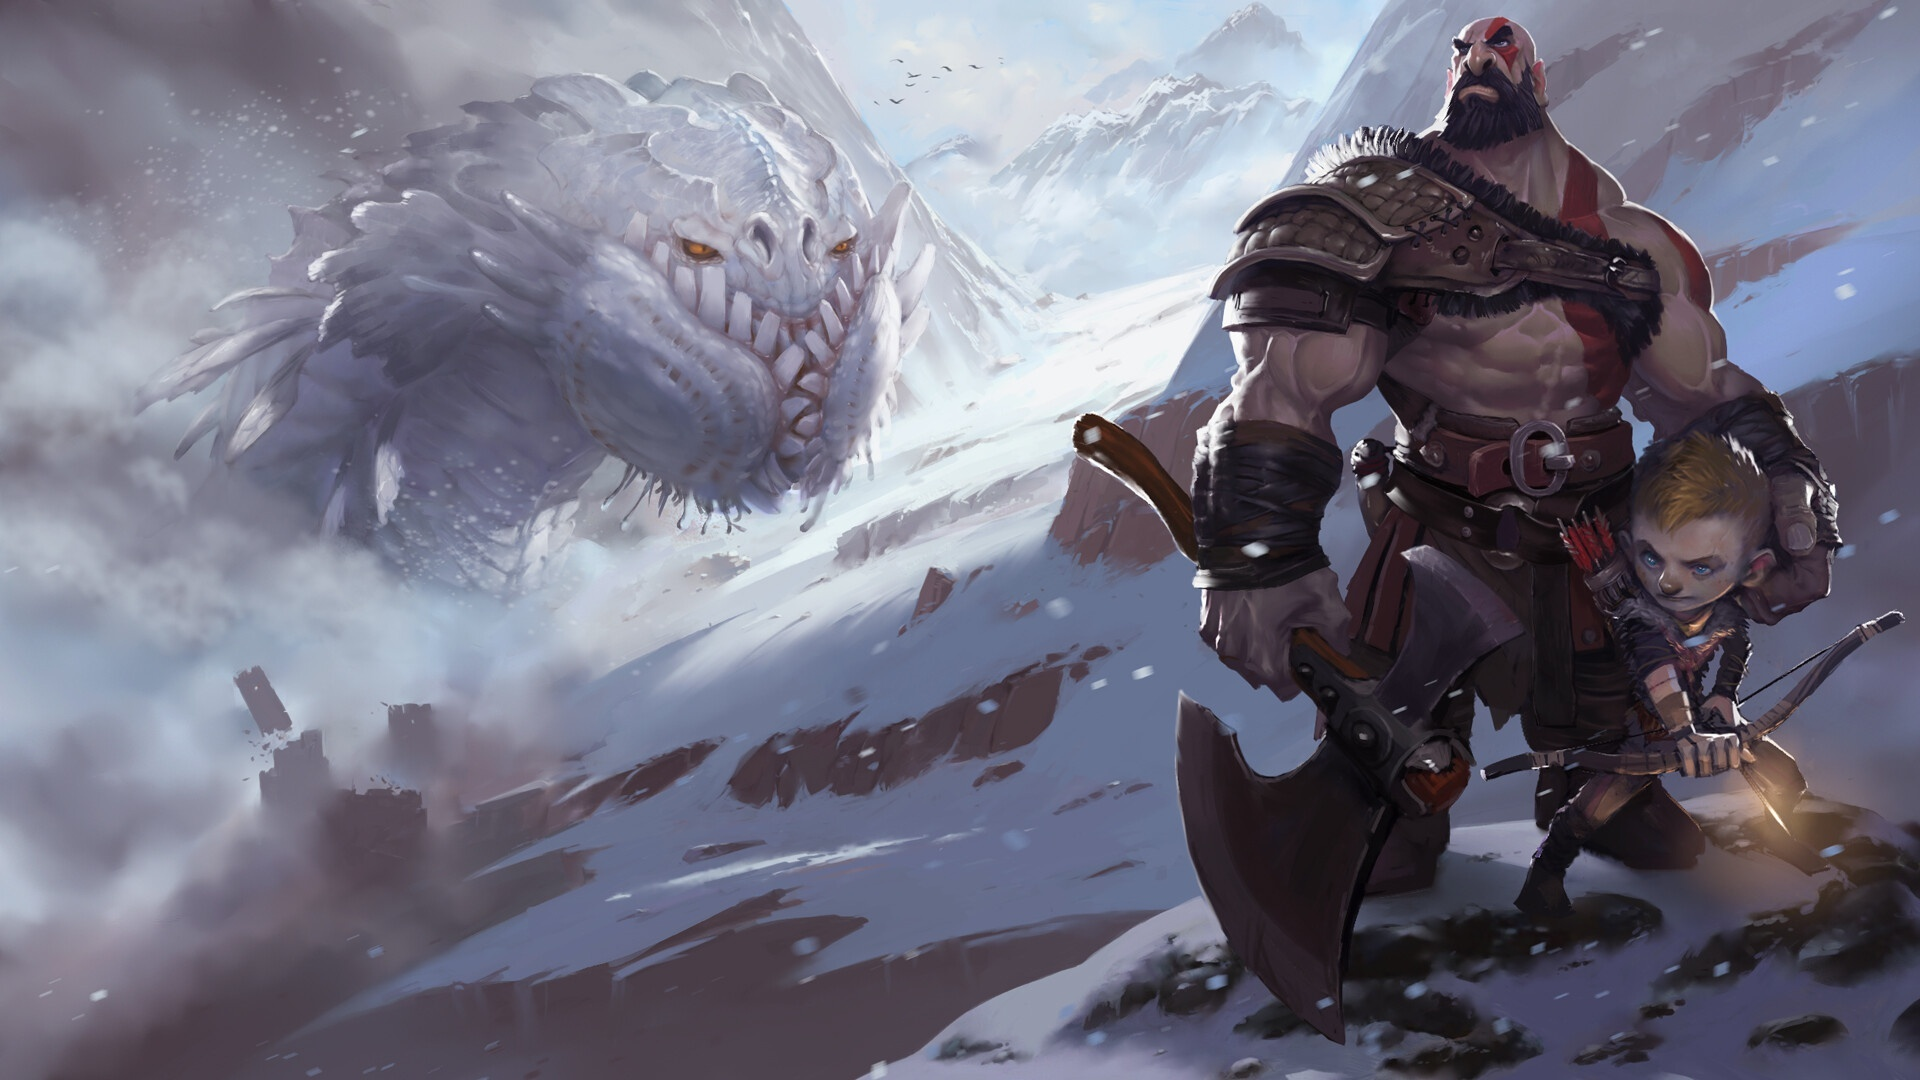 1920x1080 God Of War 4 Fanart Laptop Full Hd 1080p Hd 4k